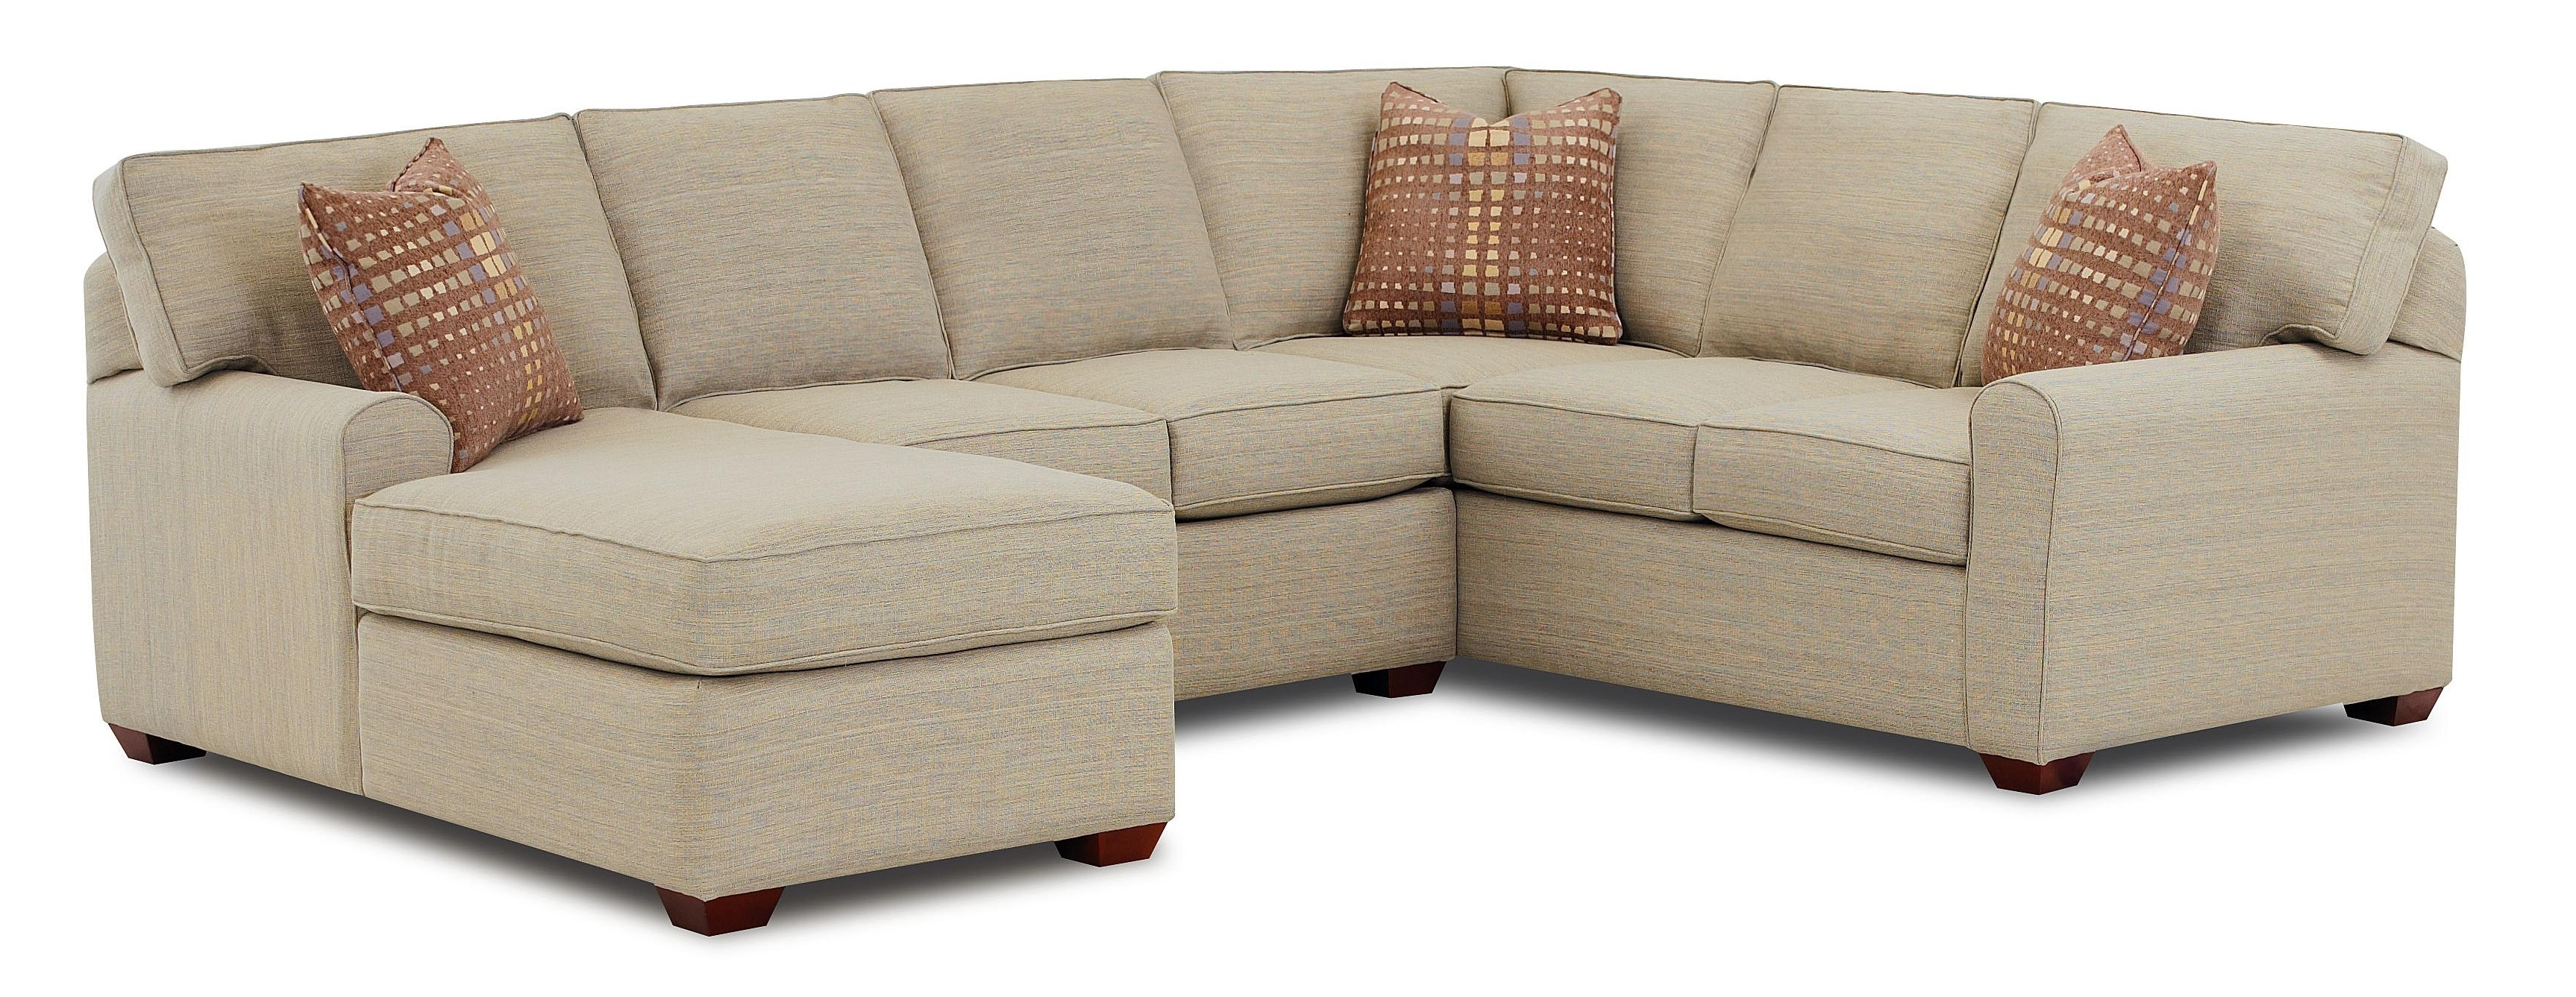 Most Recently Released Leather Sectionals With Chaise Lounge Inside Sofas : Large Sectional Sofas Gray Sectional Leather Sectional (View 10 of 15)